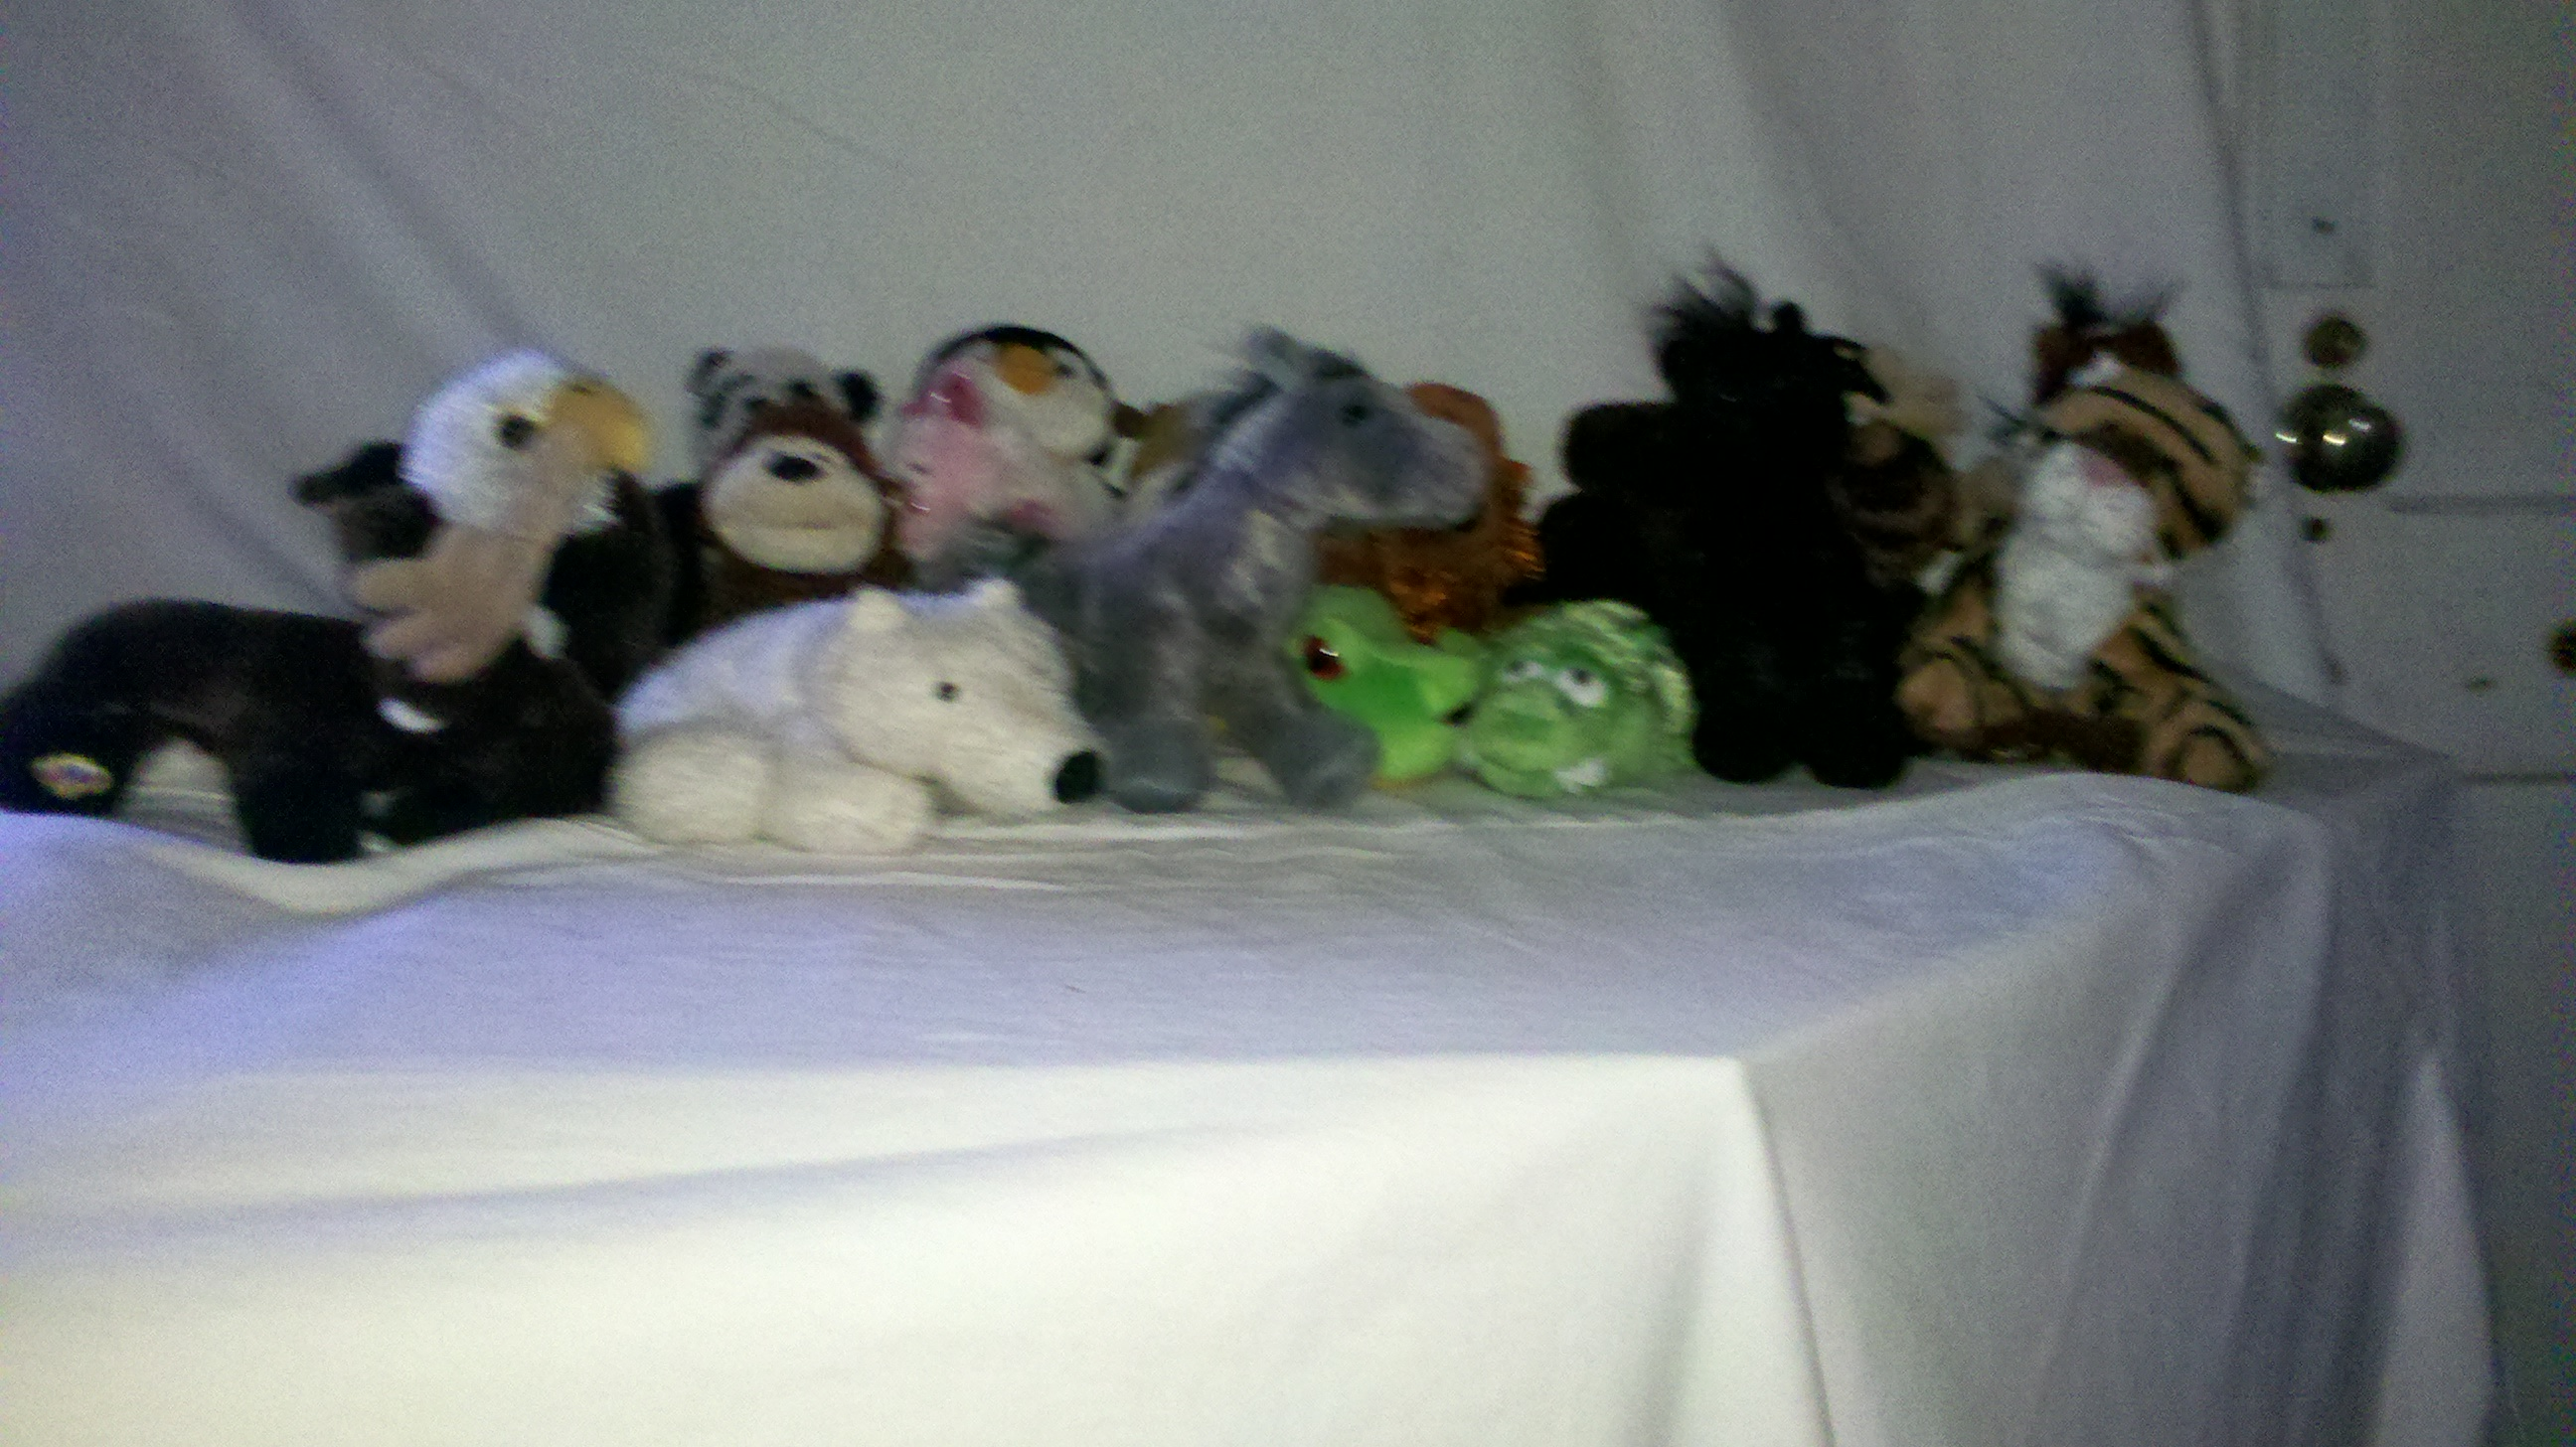 Over 100 Webkinz without tags